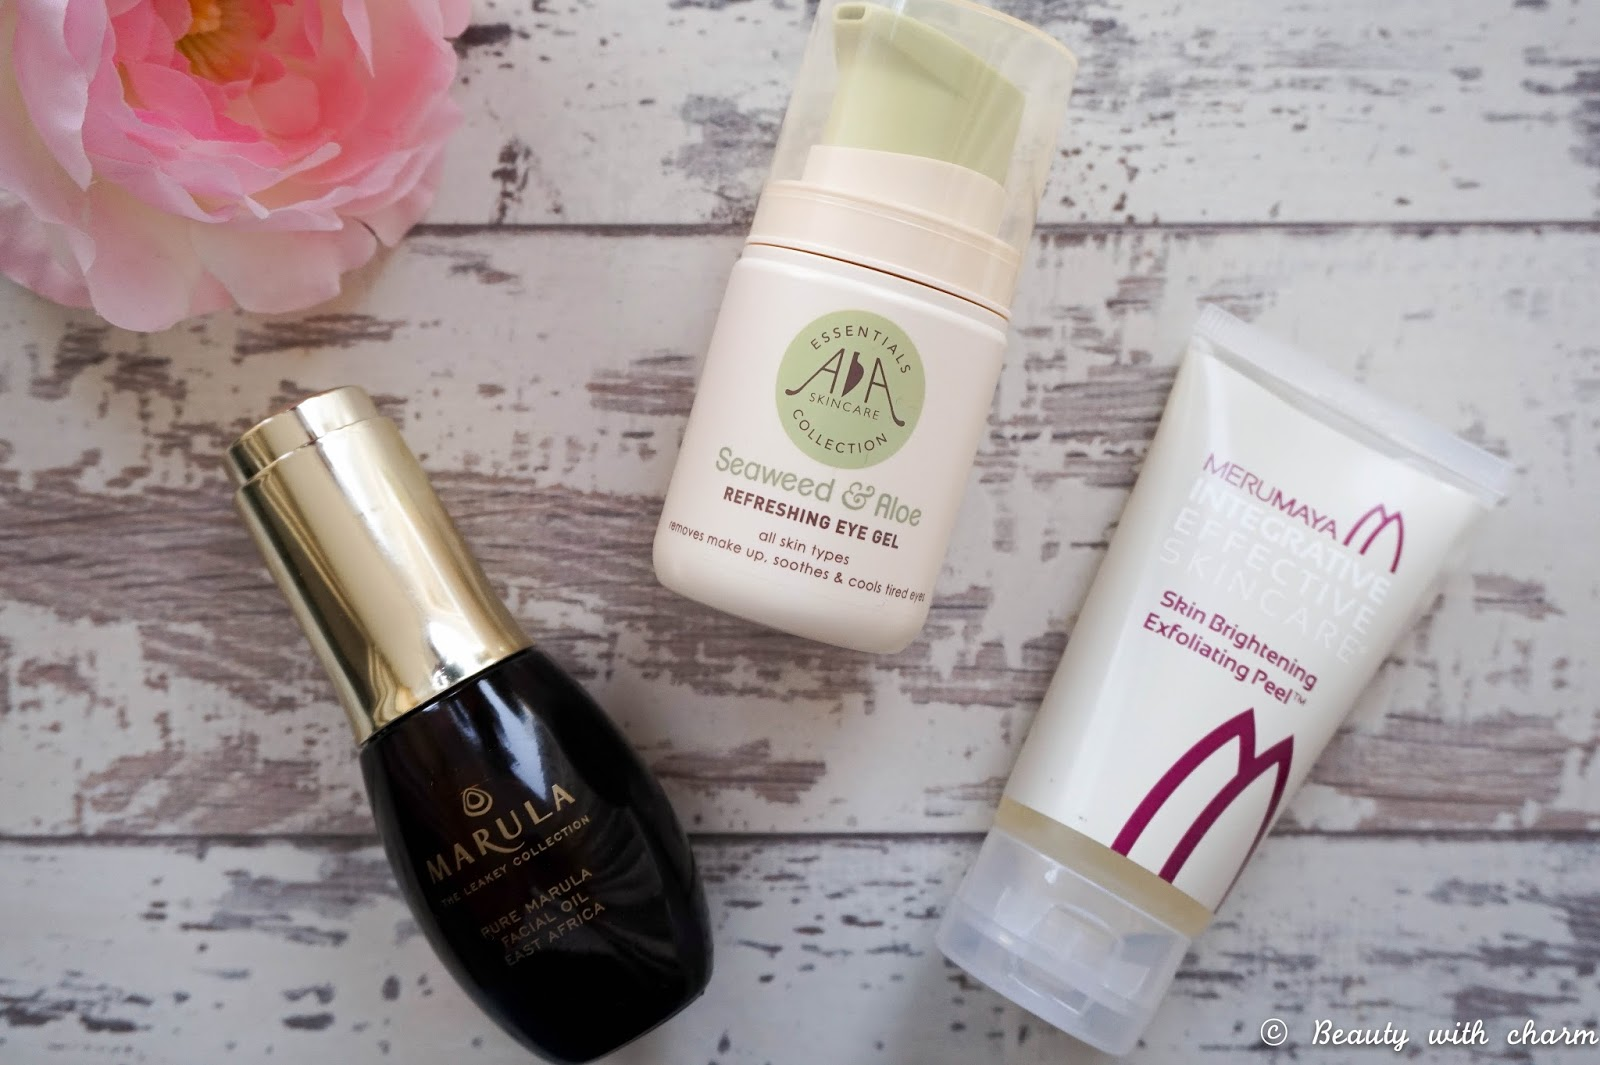 New Skincare Products - First Impressions